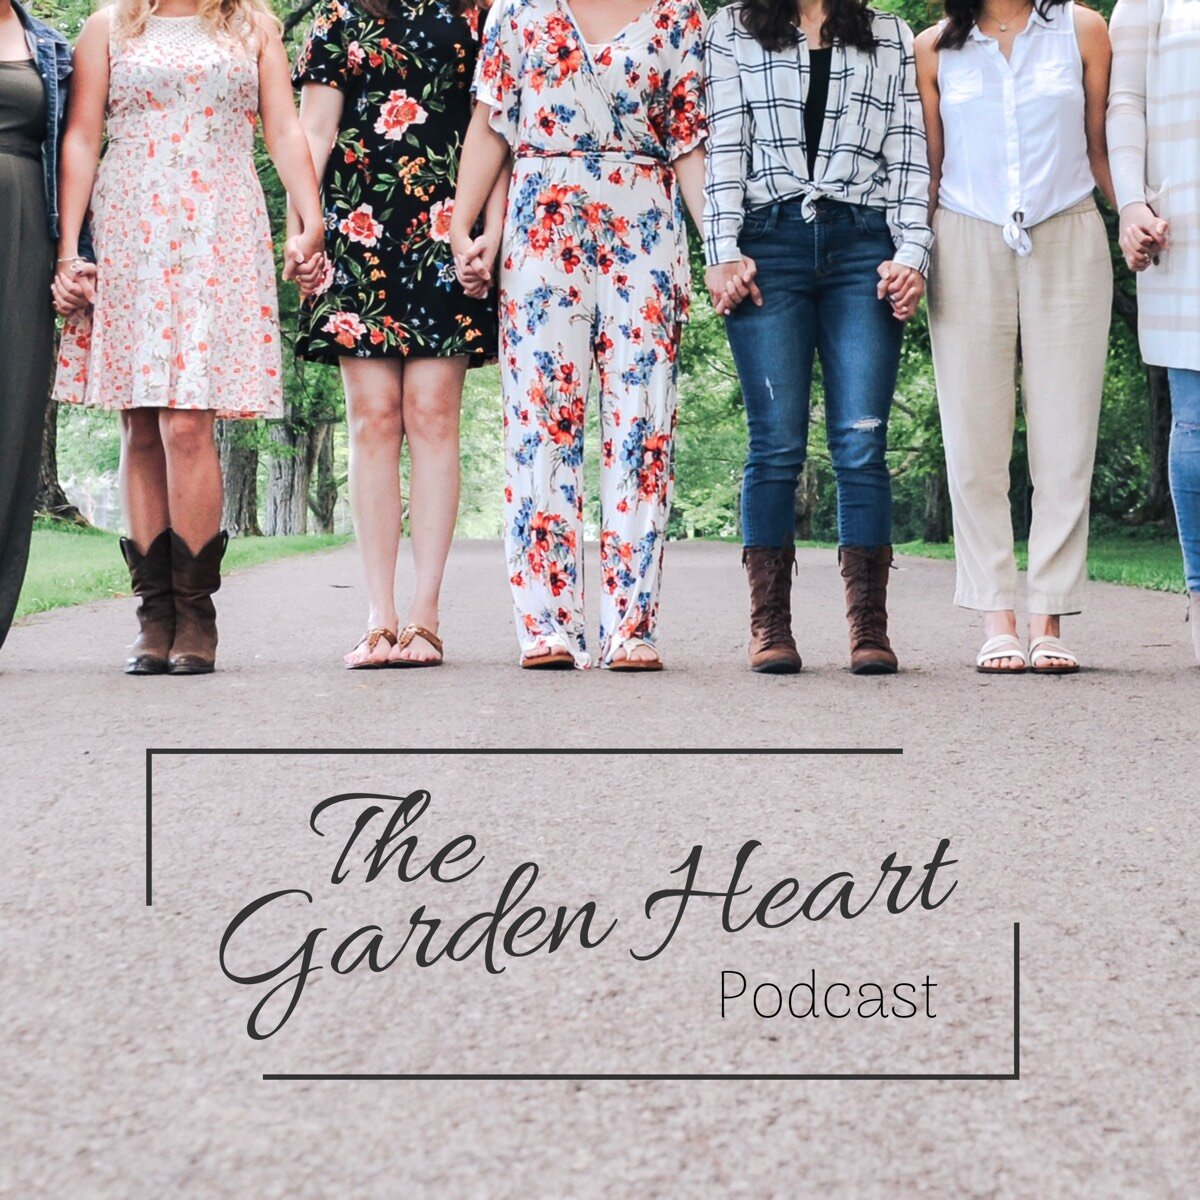 - Join us for this encouraging and life-giving podcast to equip you to cultivate abundant life from the inside out. Filled with conversations, interviews, & teachings we believe this podcast will give you the encouragement you need for any season of life!